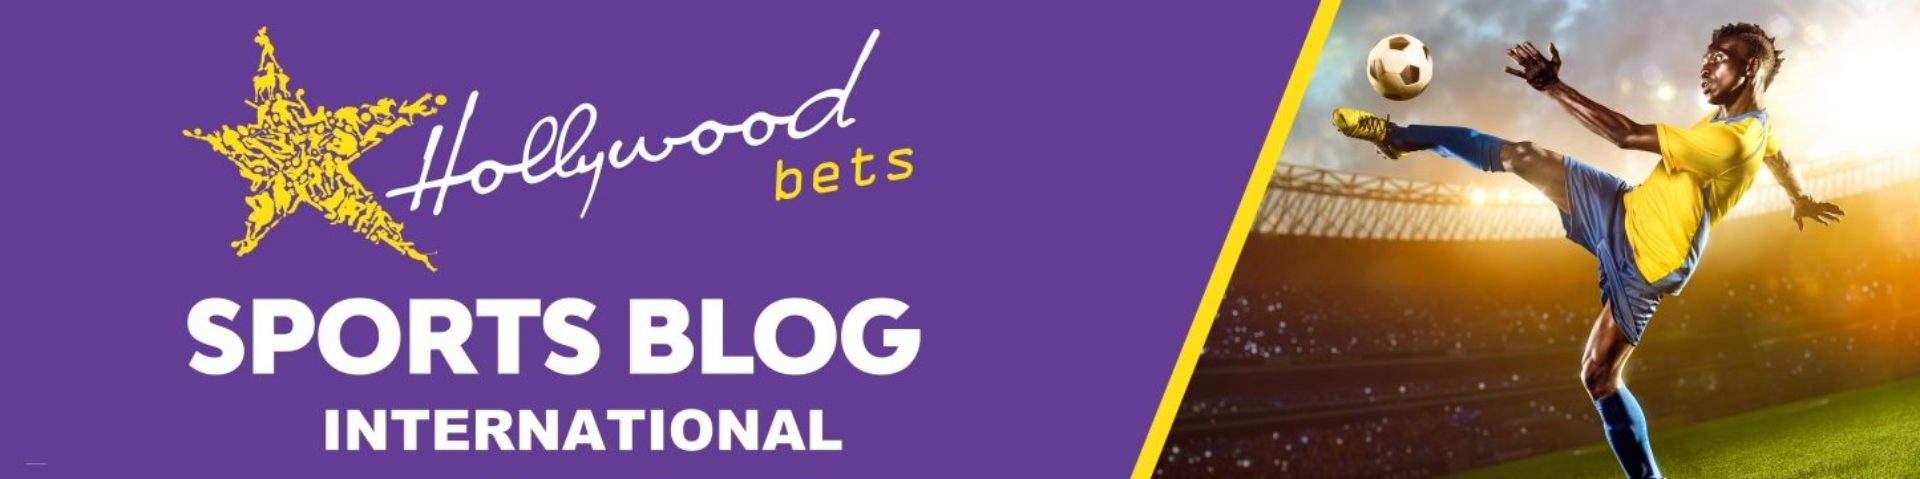 Hollywoodbets International – Blog